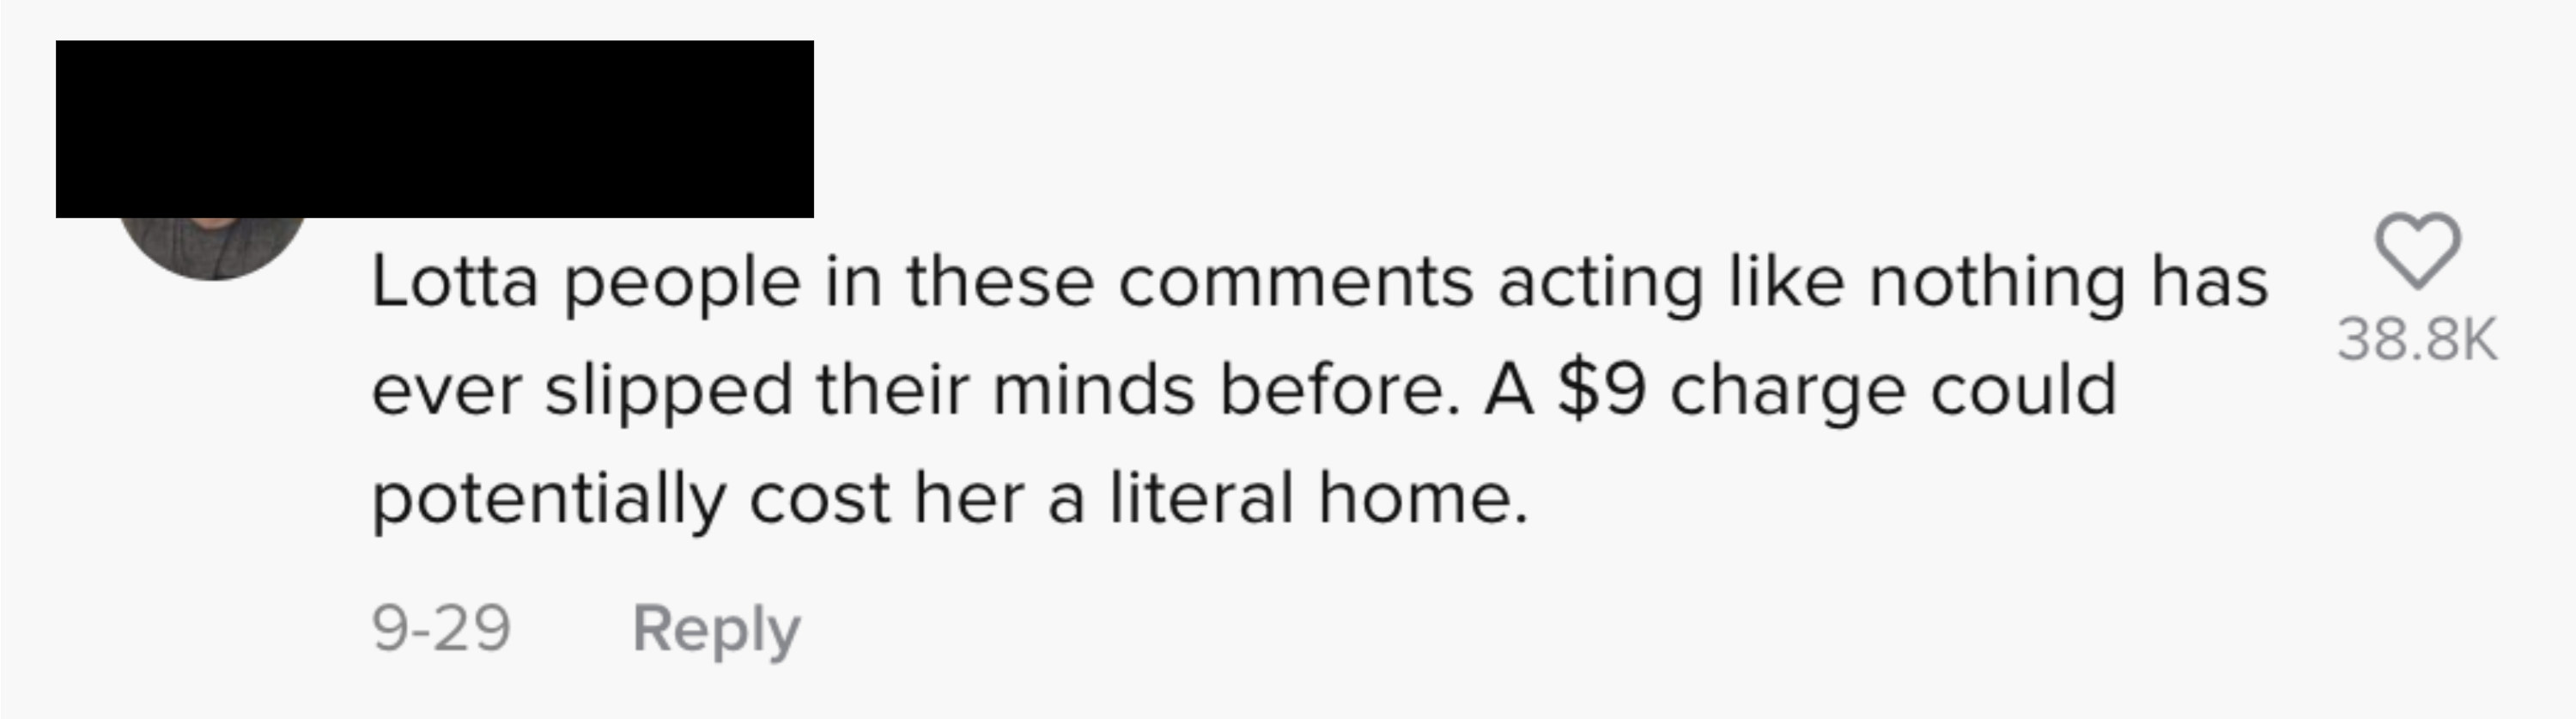 text: Lotta people in these comments acting like nothing has ever slipped their minds before. A $9 charge could potentially cost her a literal home